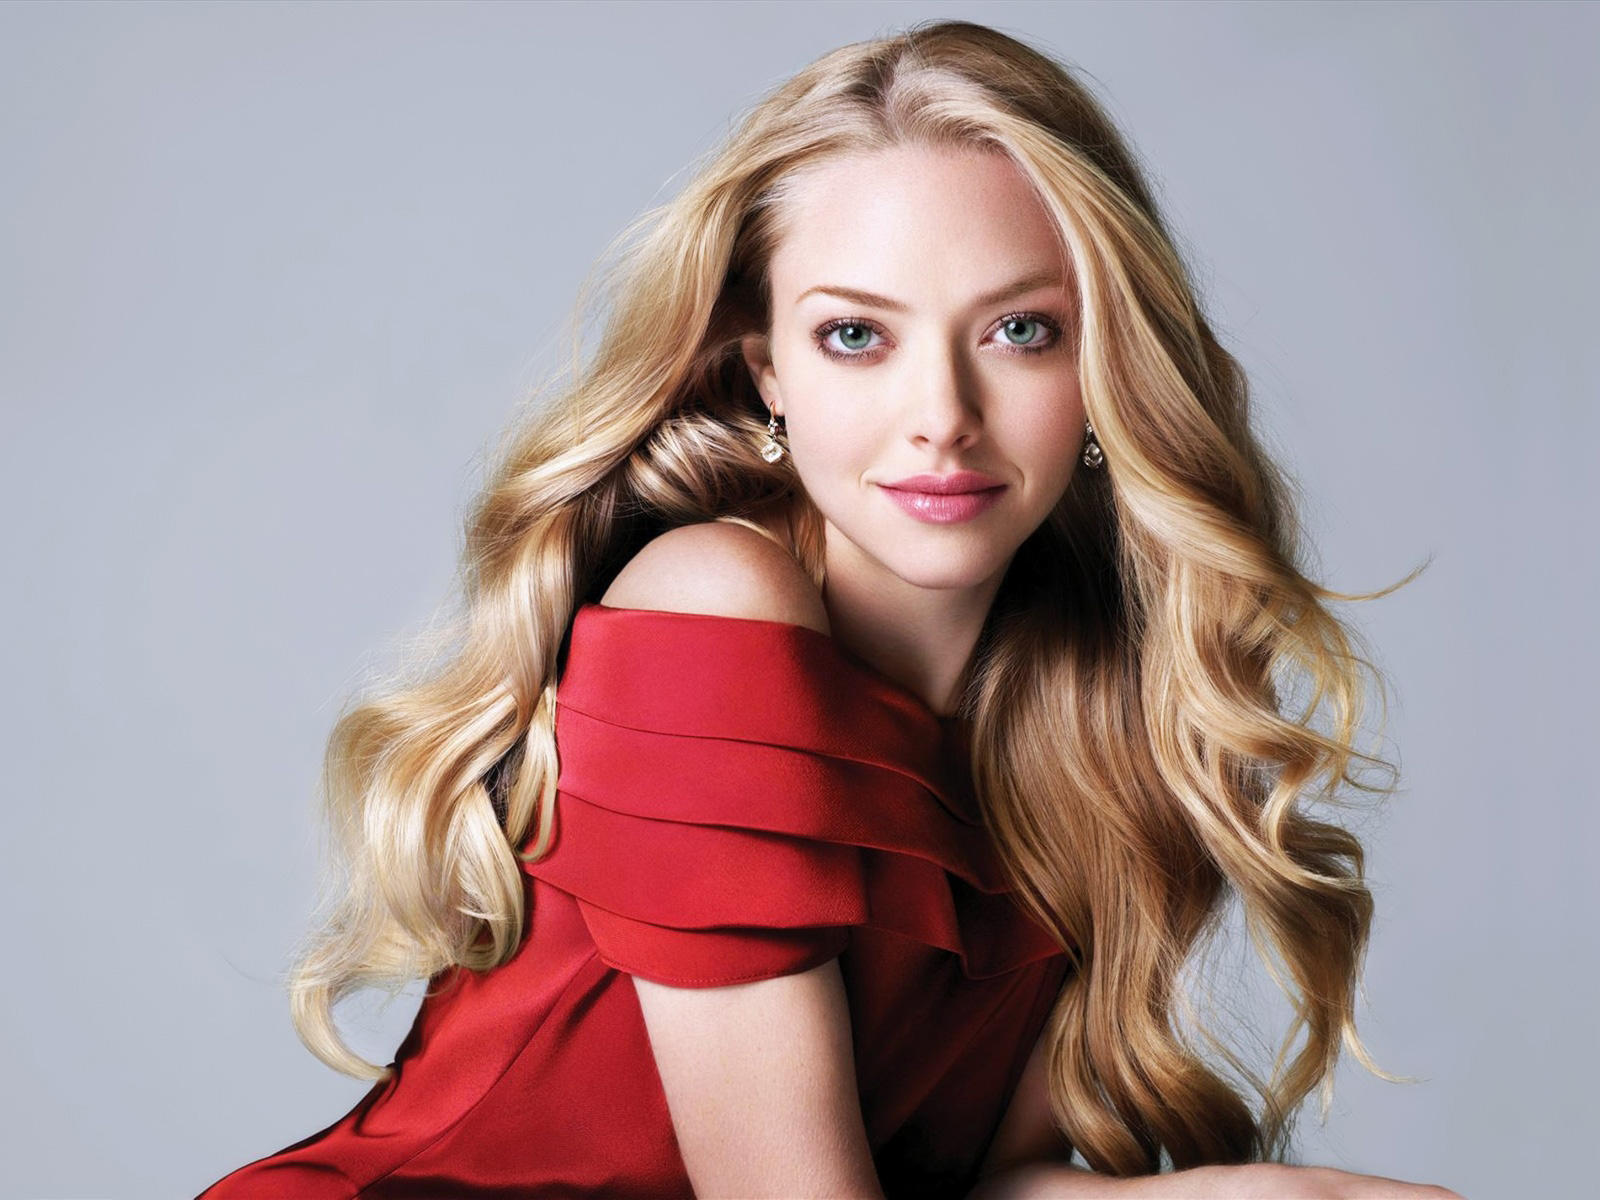 Amanda Seyfried at El Hormiguero Your Wallpaper